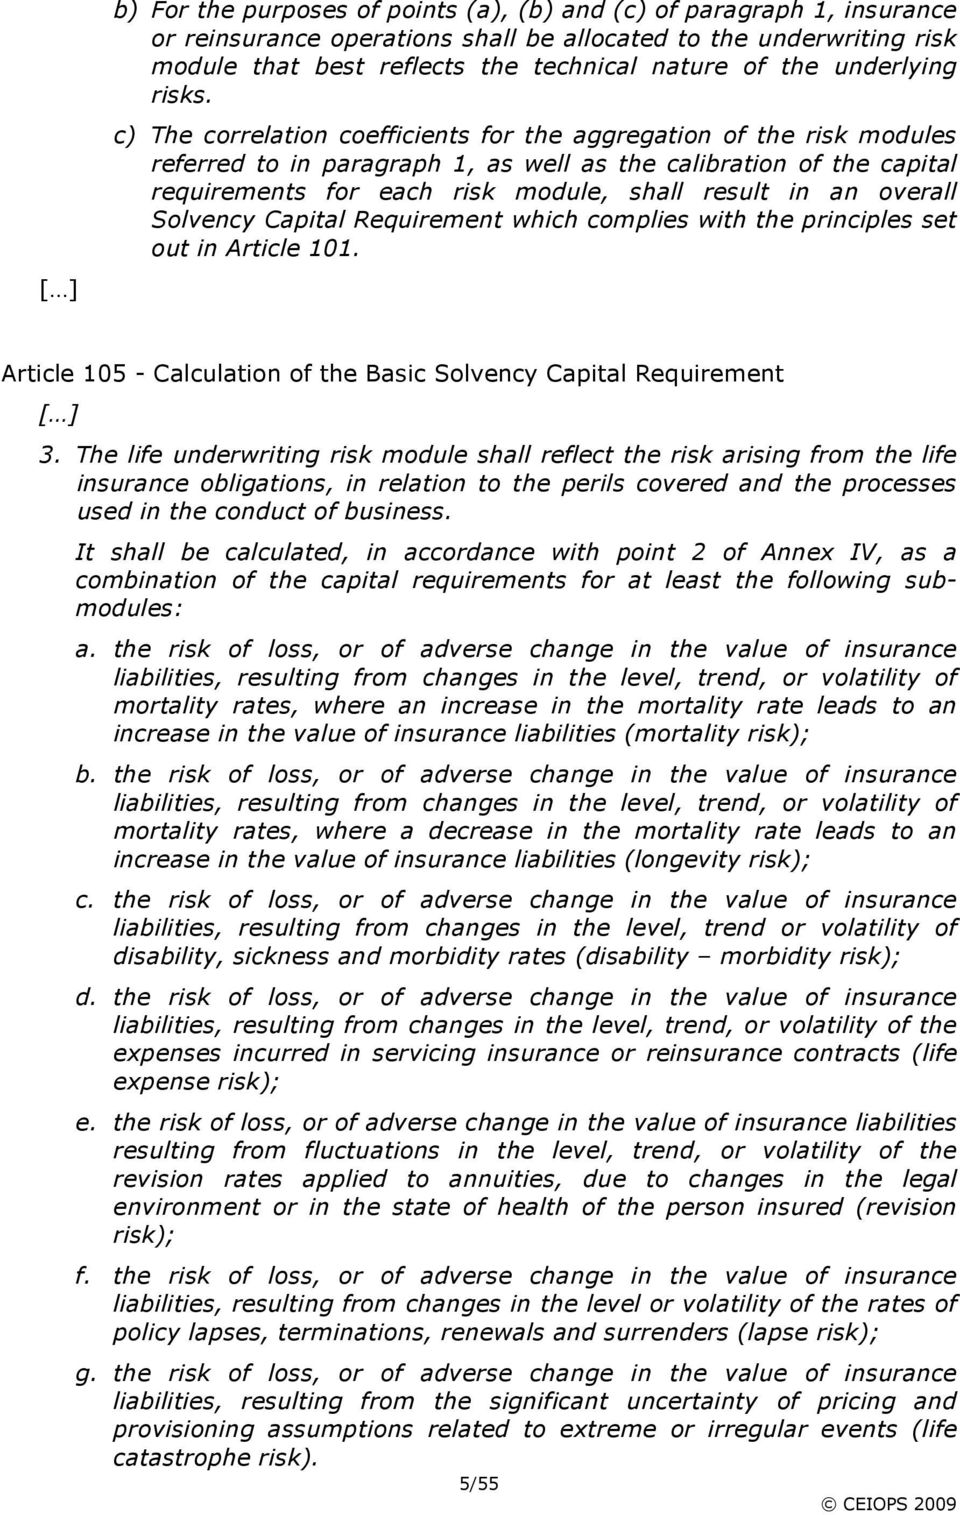 c) The correlation coefficients for the aggregation of the risk modules referred to in paragraph 1, as well as the calibration of the capital requirements for each risk module, shall result in an